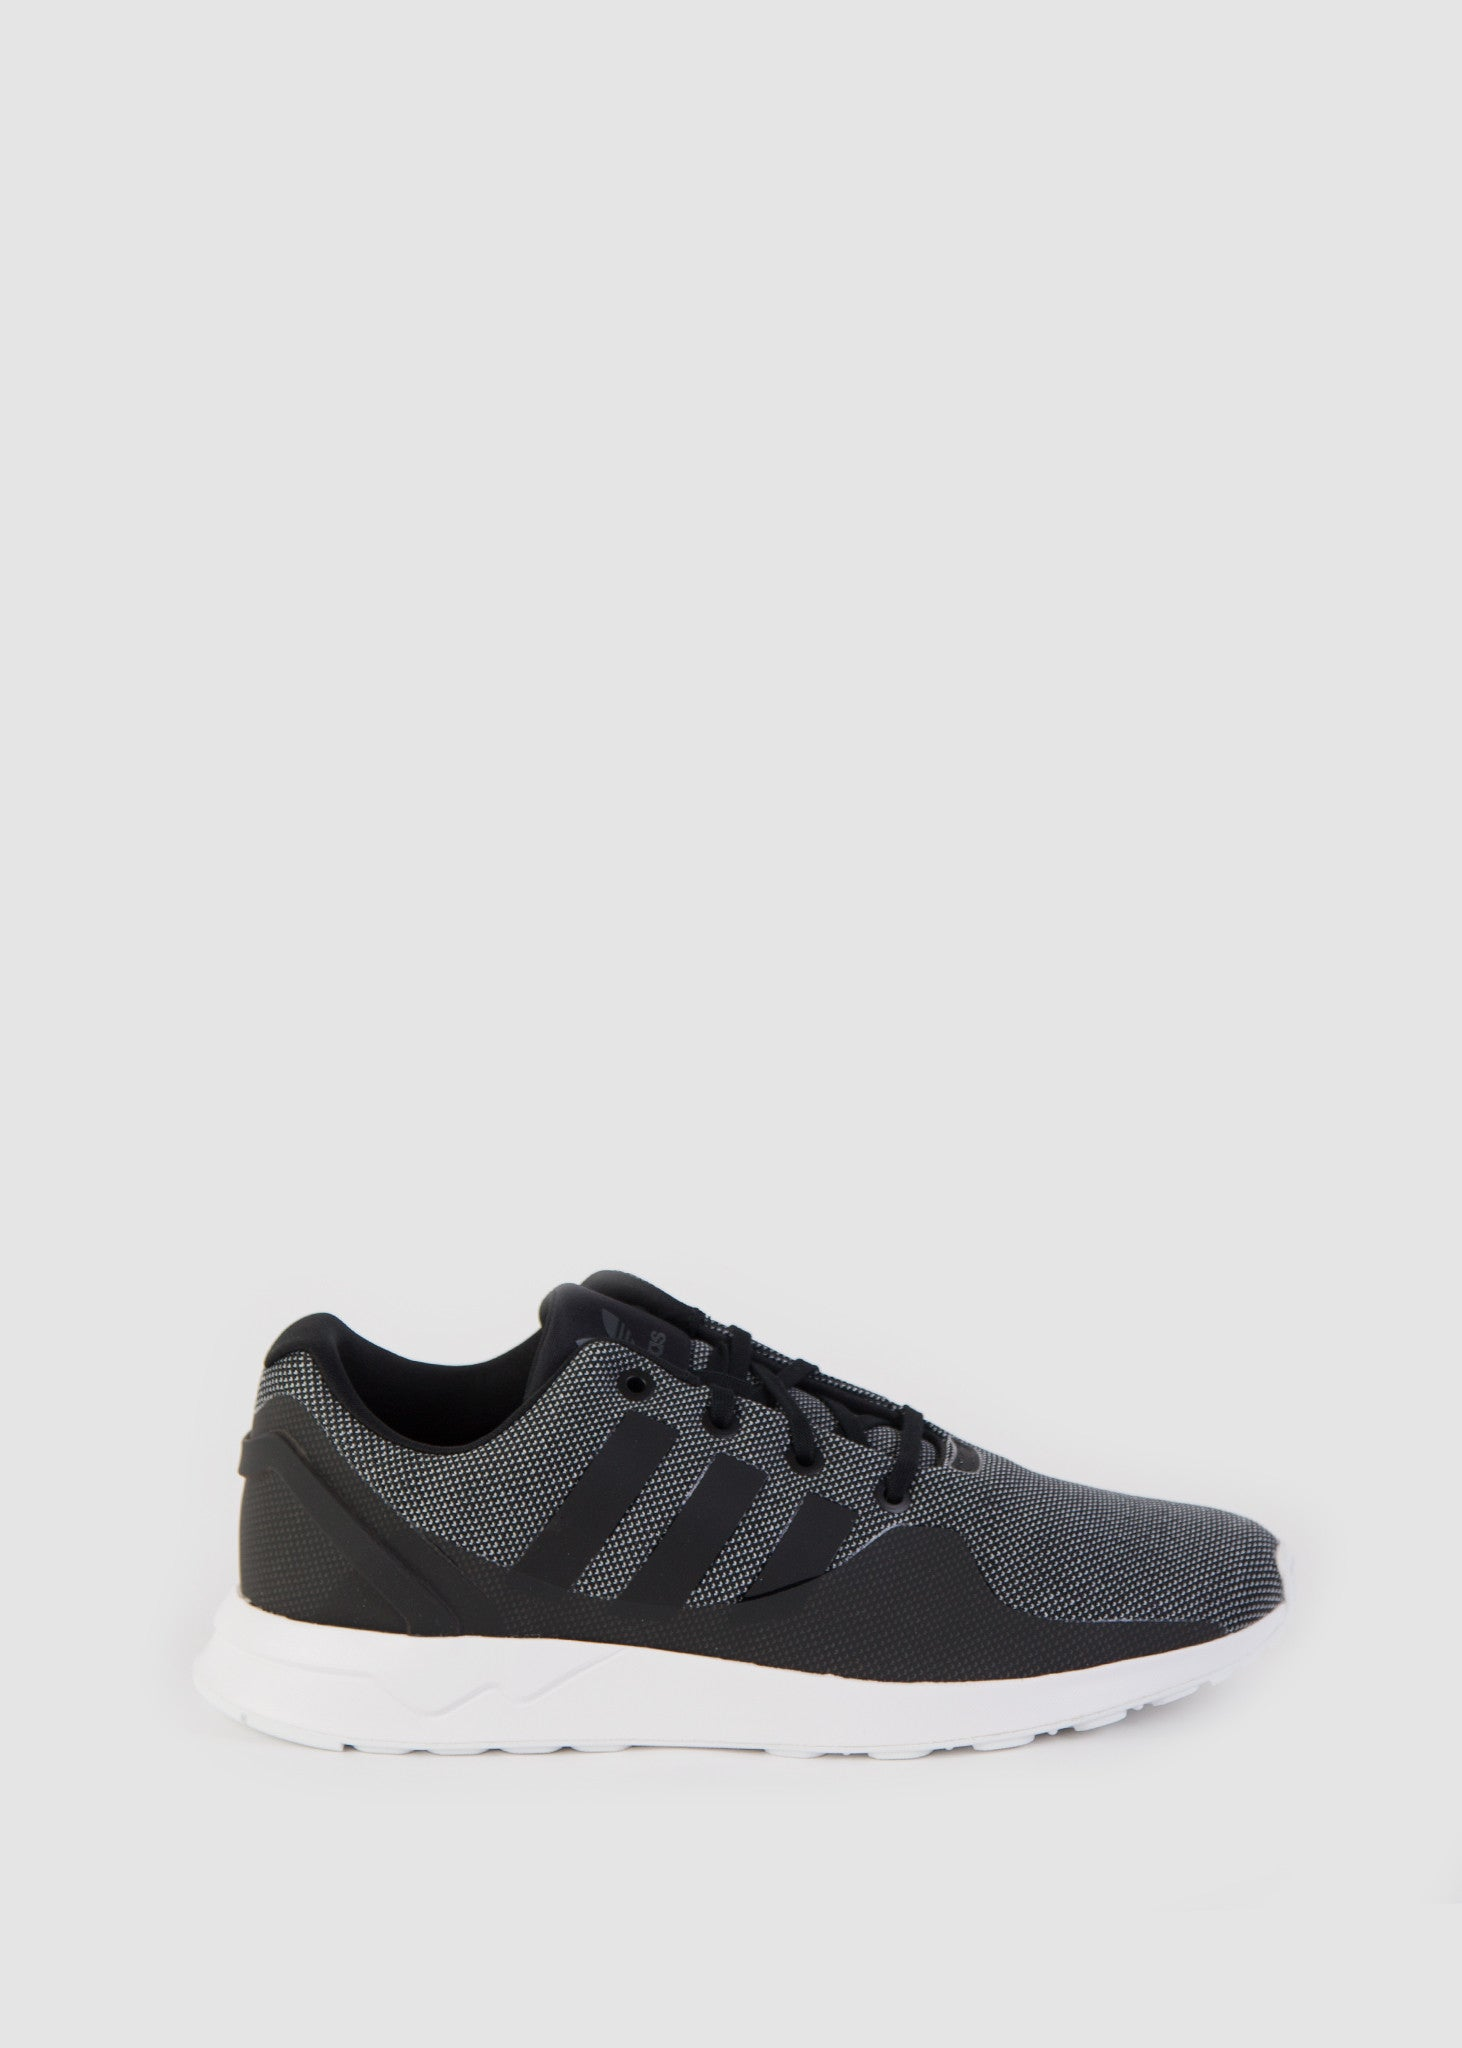 ZX FLUX ADV TECH Shoes Black/Grey